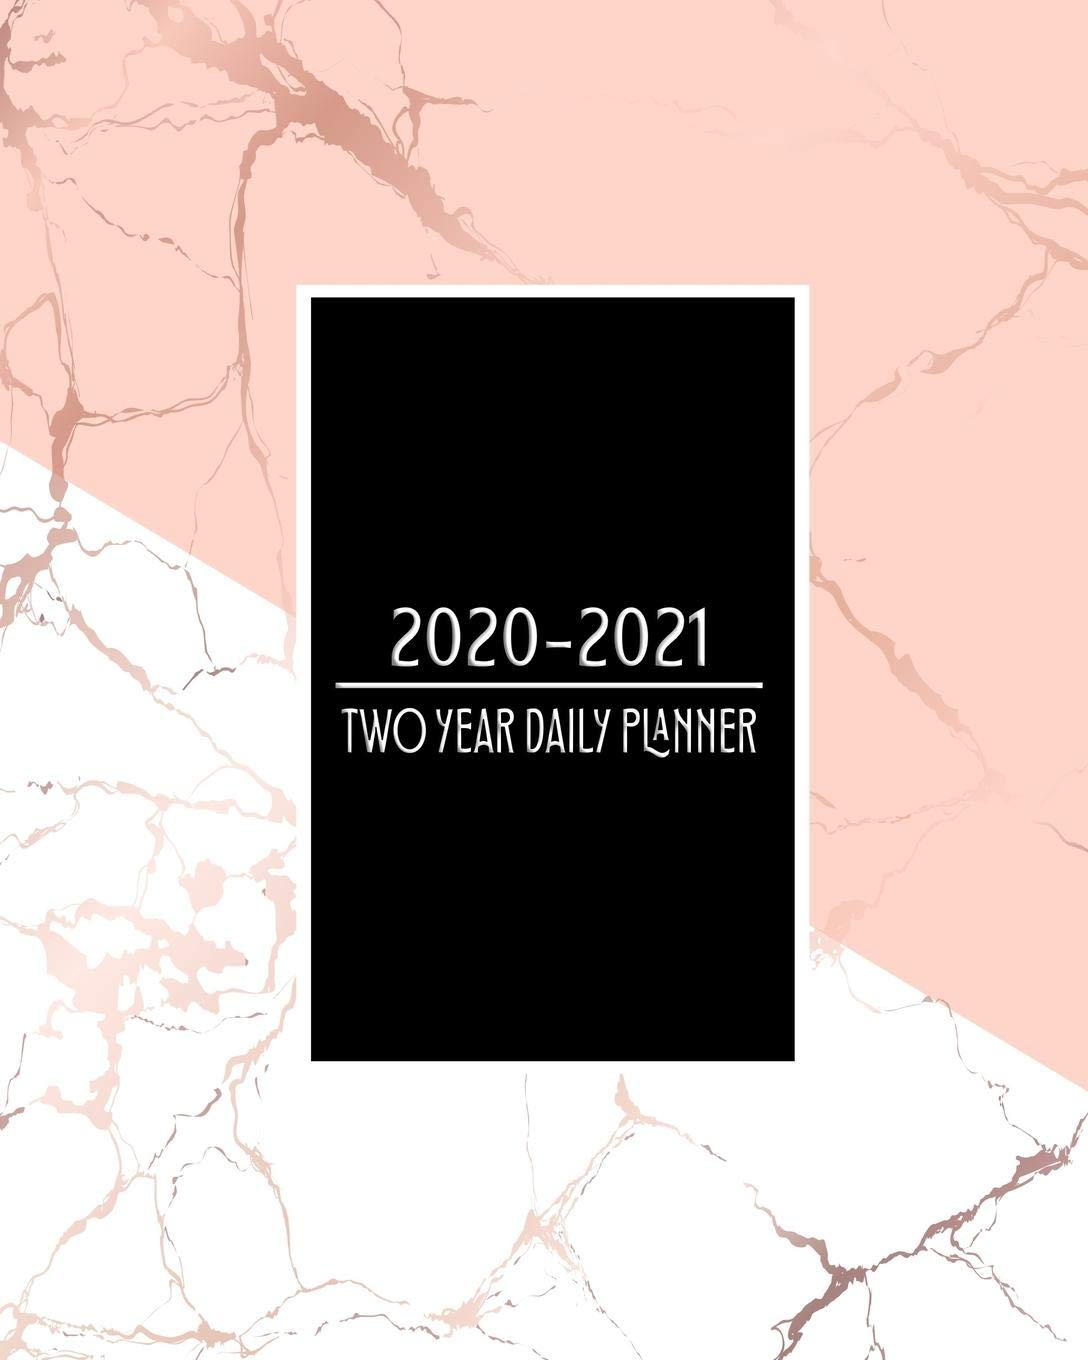 Amazon.com: 2020 - 2021 Two Year Daily Planner: Pink White ...